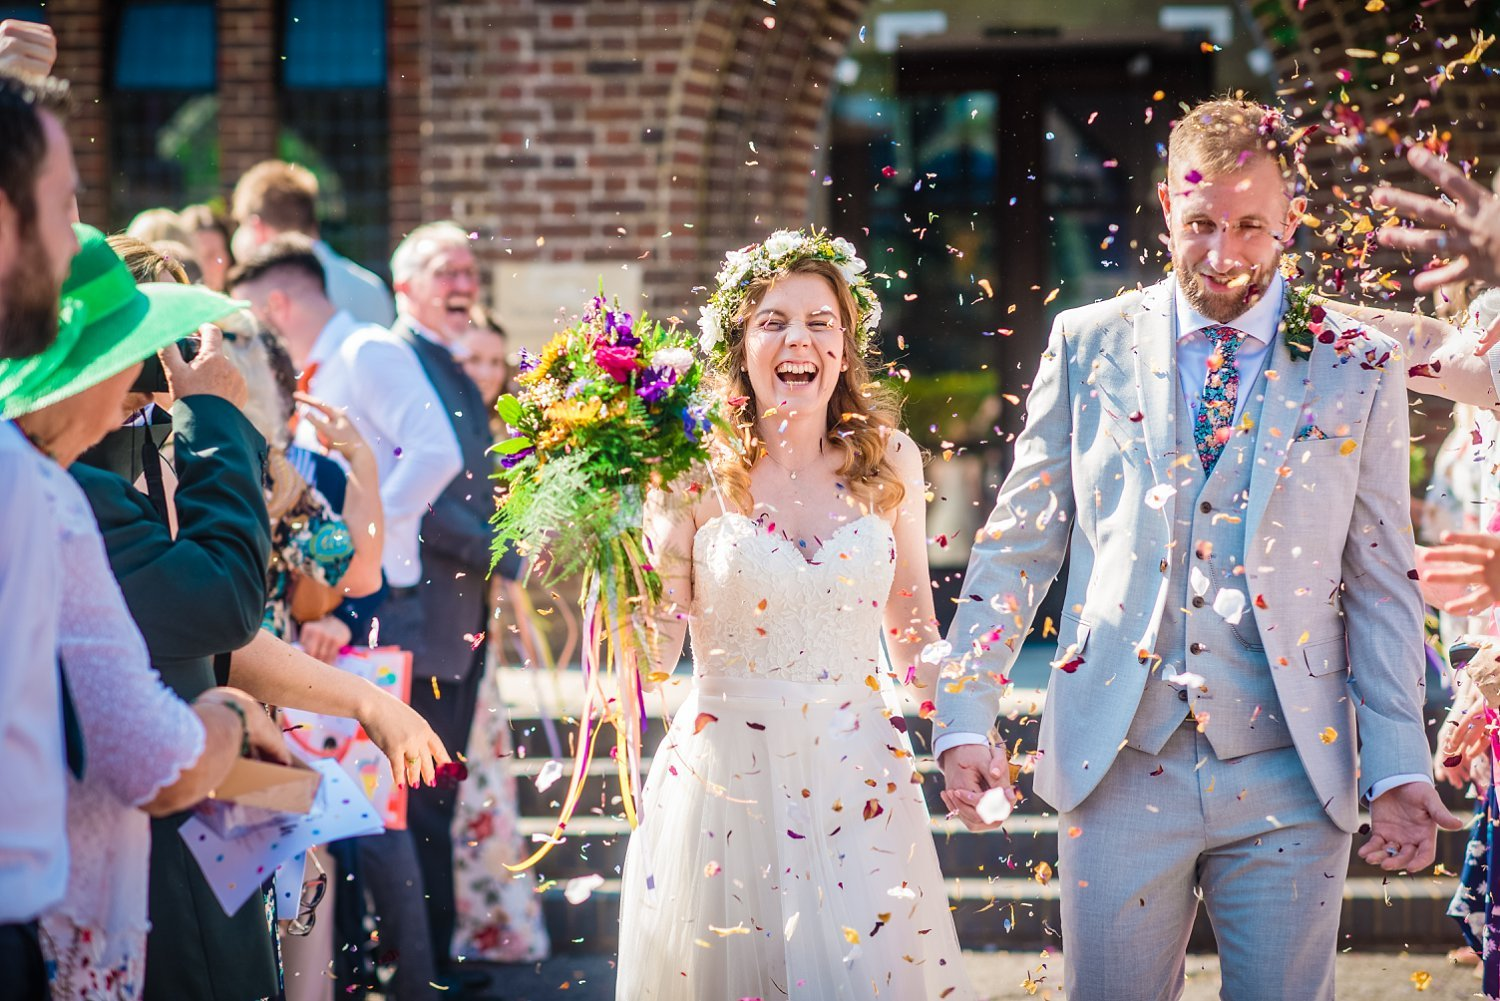 Farnham Wedding Photographer - husband and wife are walking while they are getting thrown confetti at them.. they are both happy and smiling